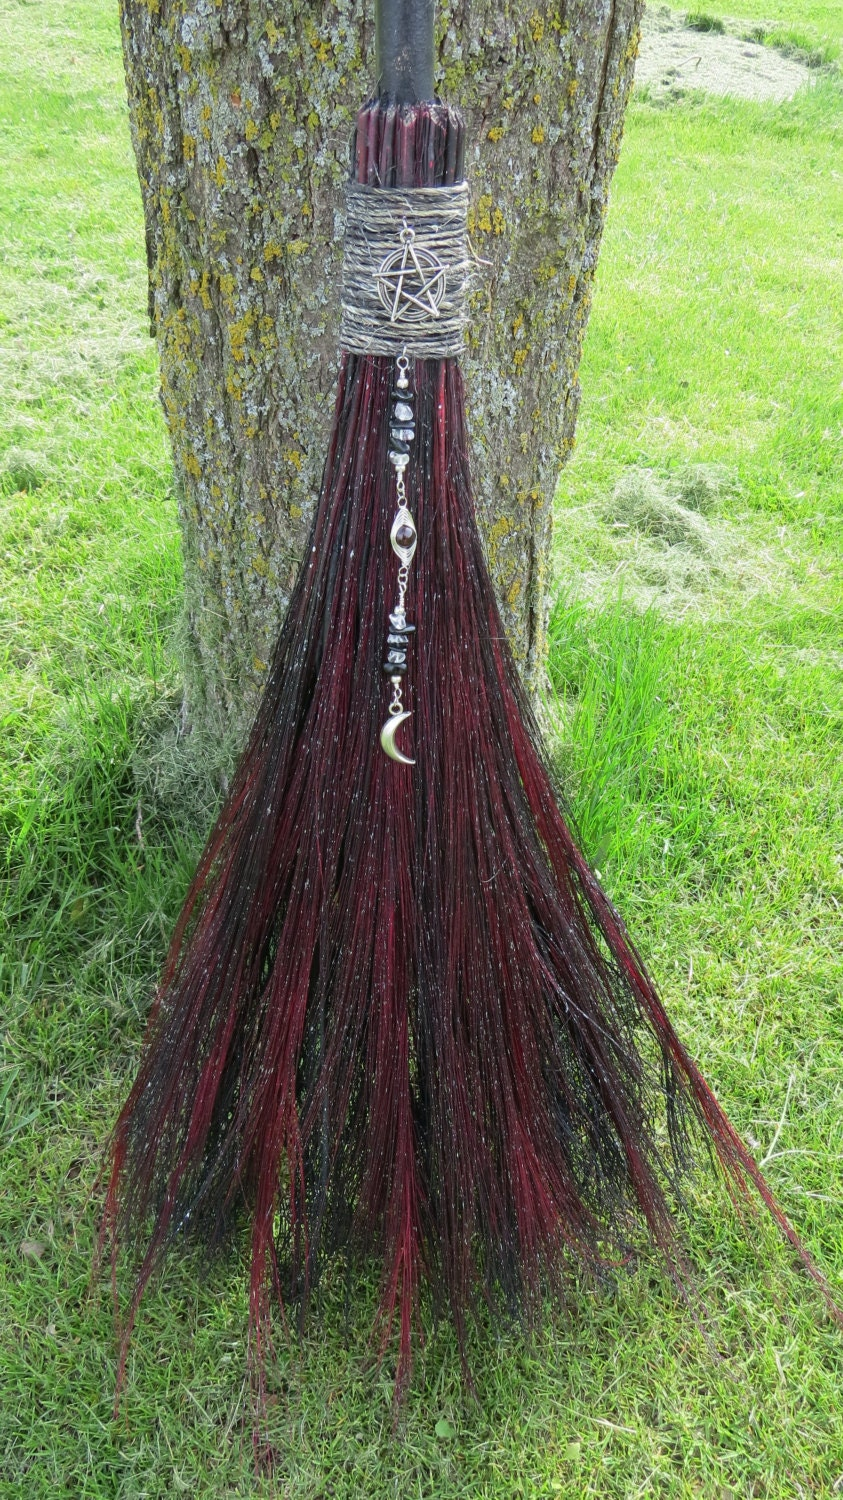 broom pagan wedding broom witches broom broomstick